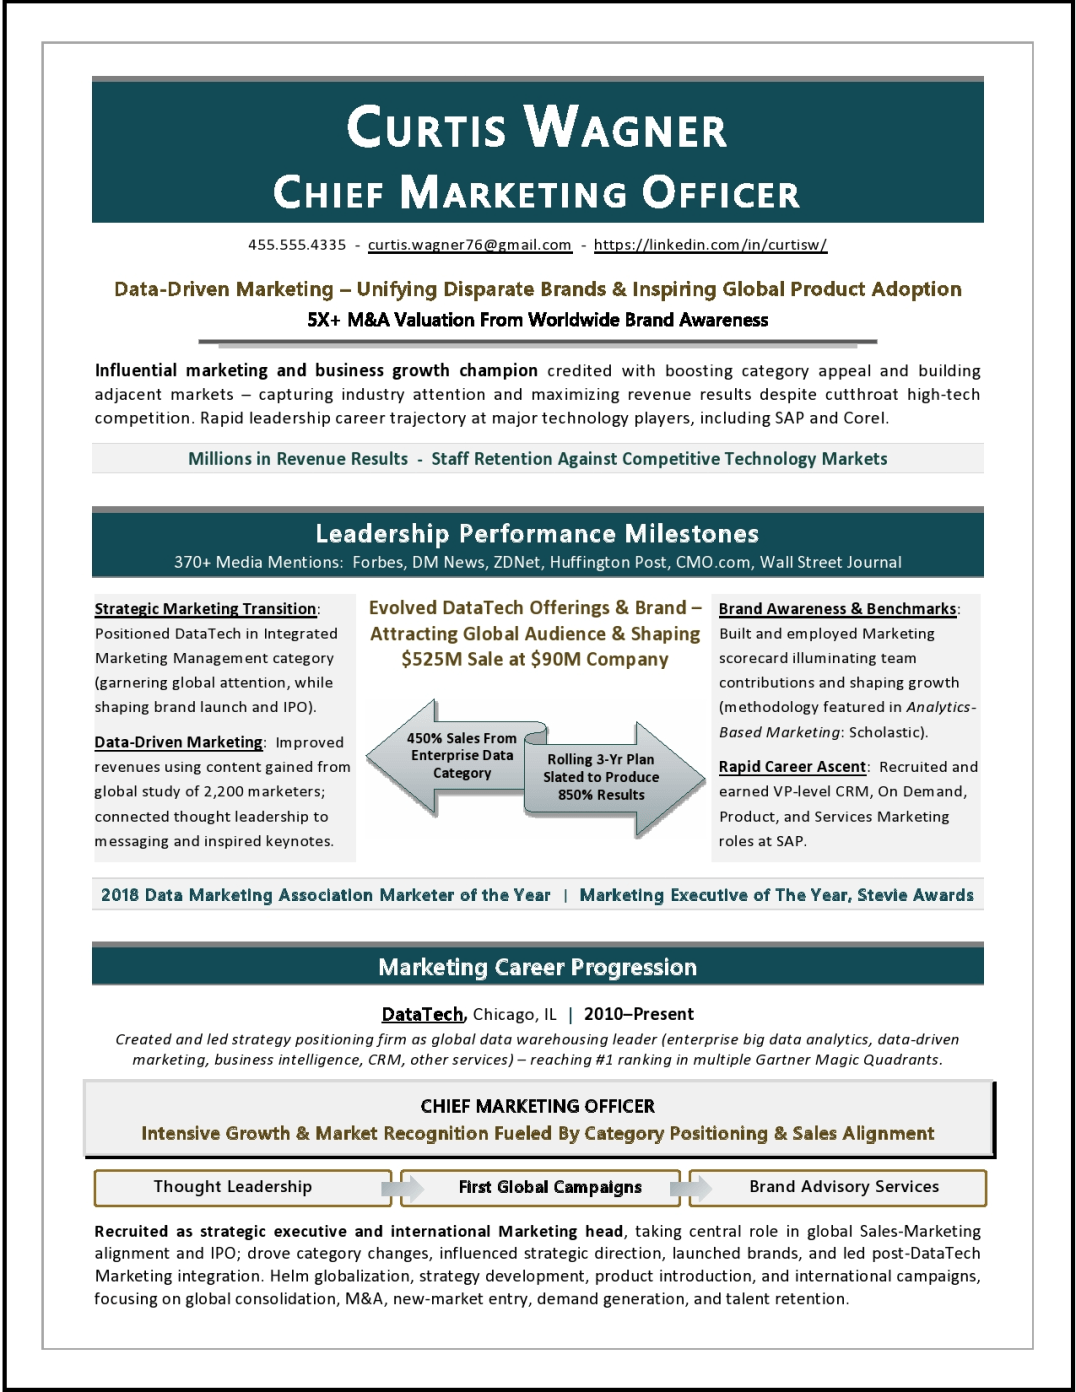 Award-Winning Chief Marketing Officer Resume Sample by Laura Smith-Proulx